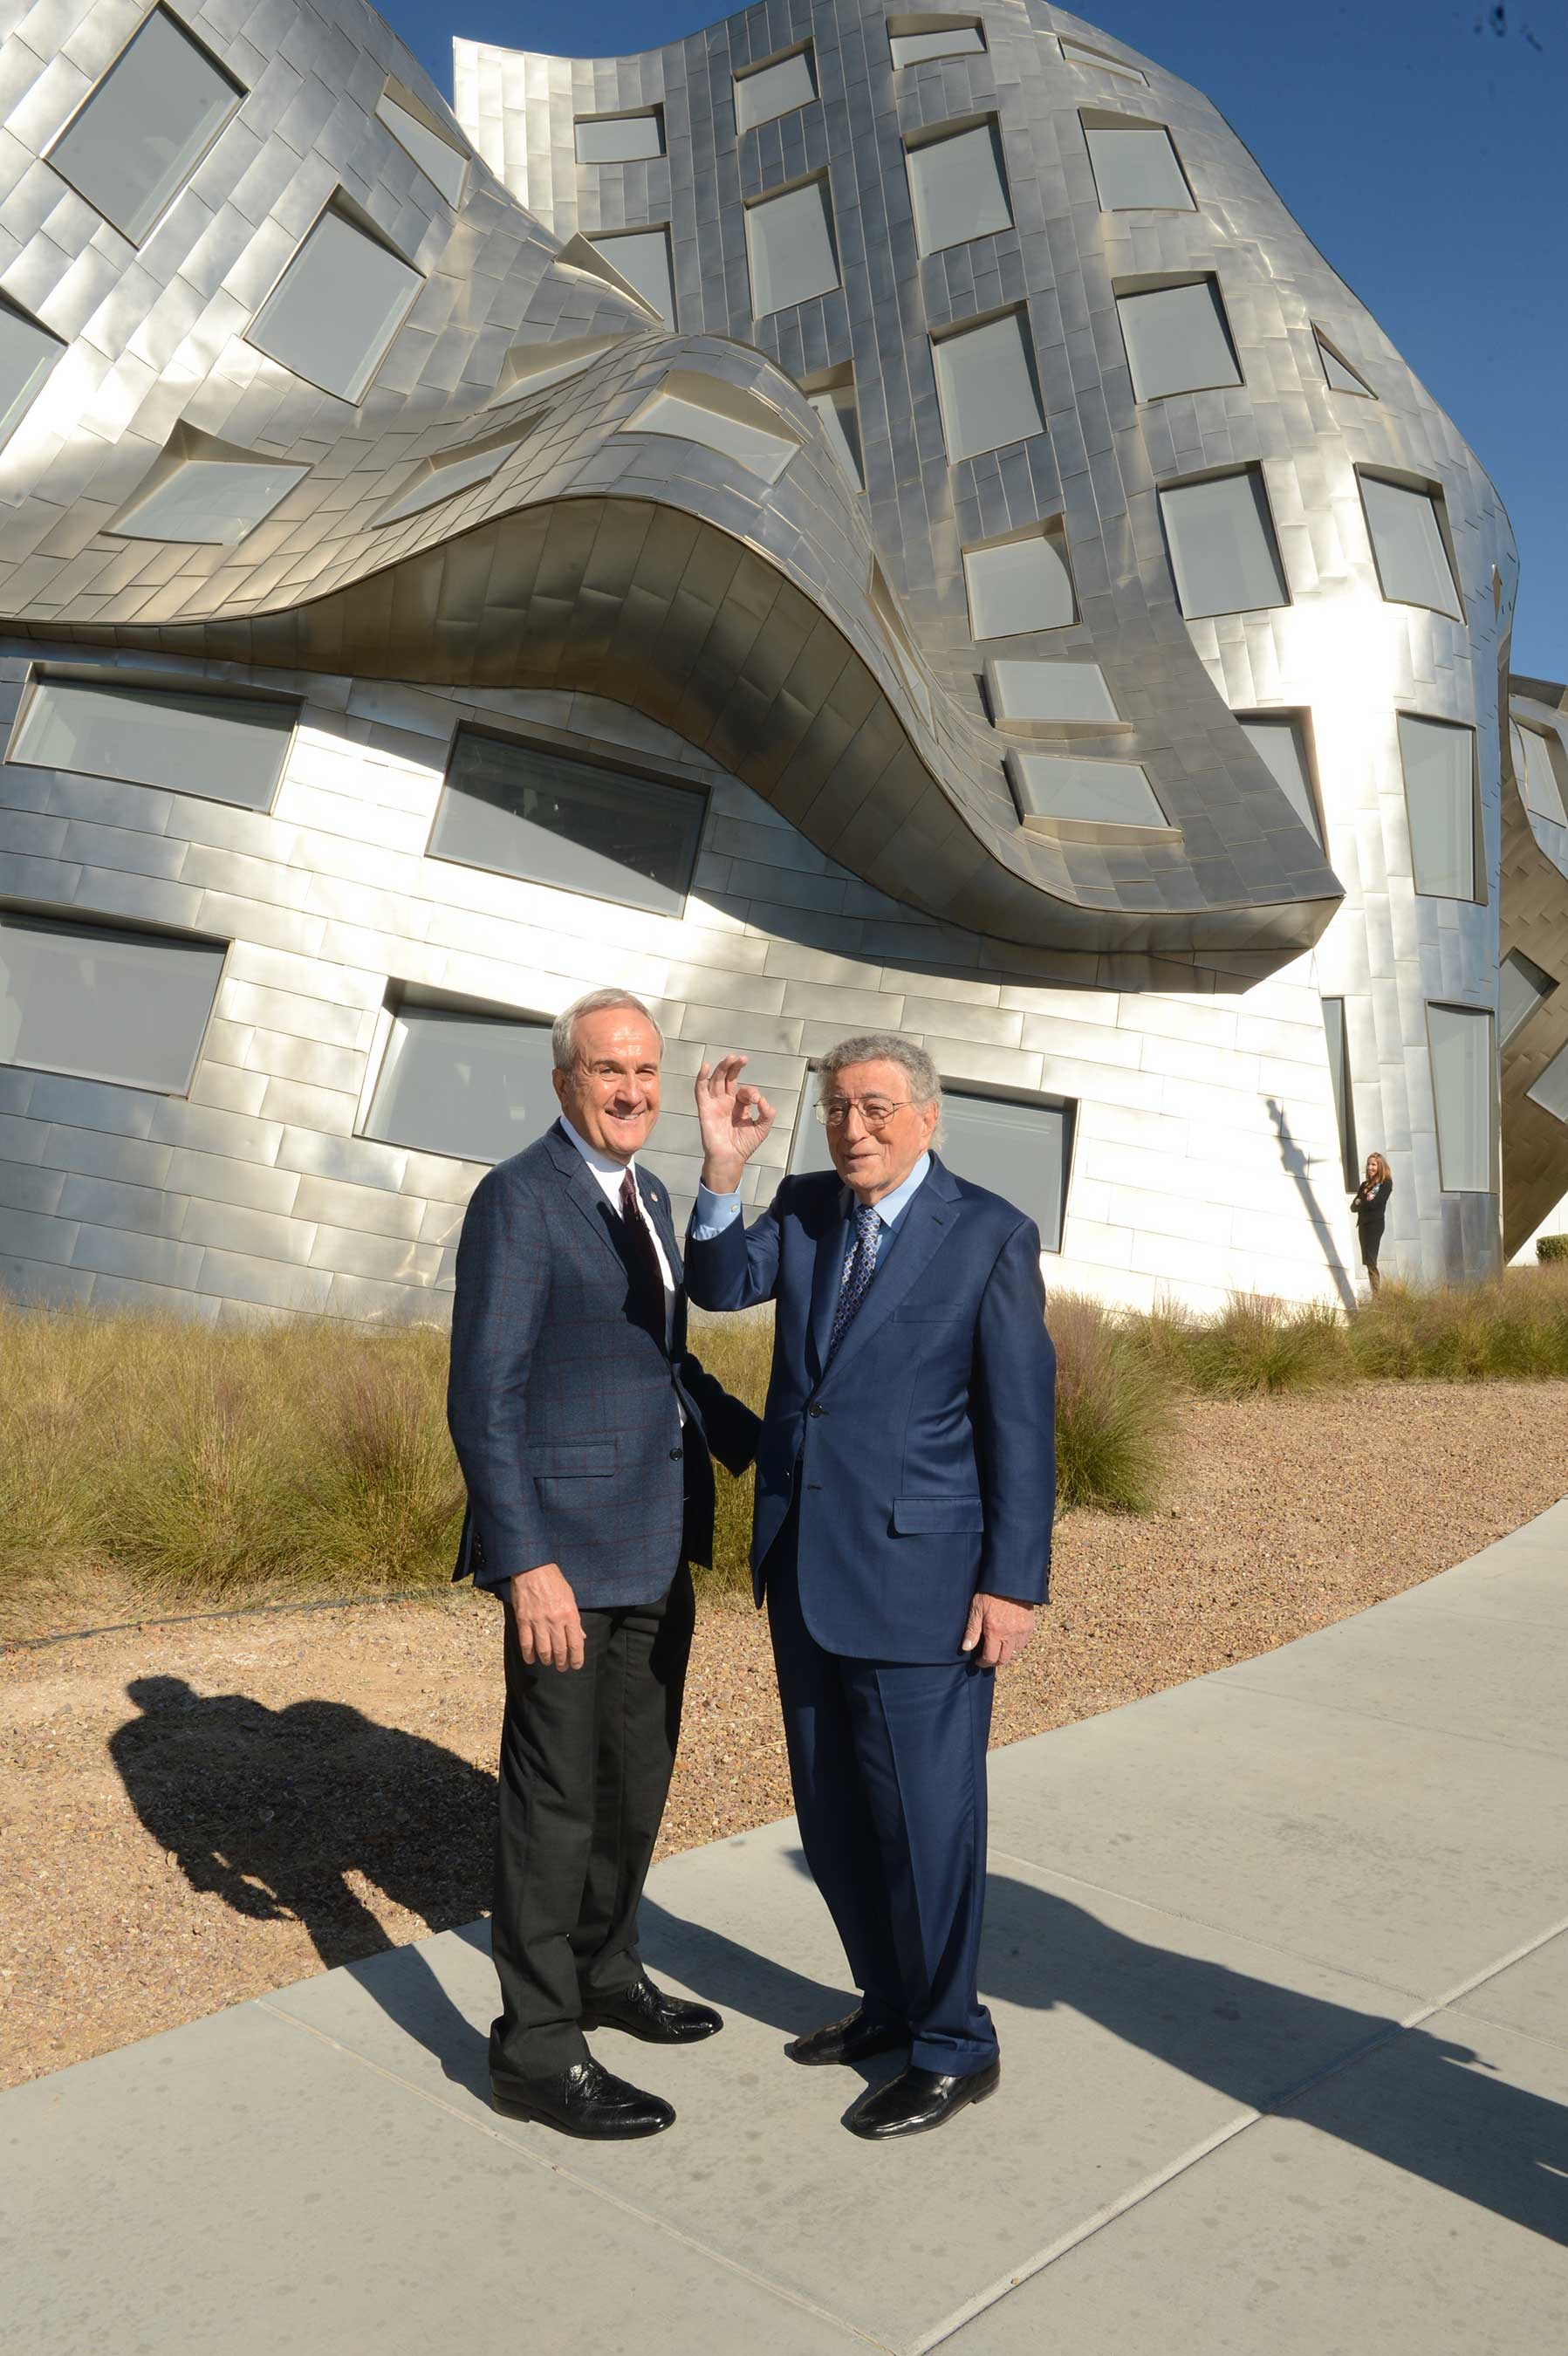 Keep Memory Alive founder Larry Ruvo (L) and 2016 Power of Love gala honoree Tony Bennett outside the iconic Keep Memory Alive Event Center at Cleveland Clinic Lou Ruvo Center for Brain Health